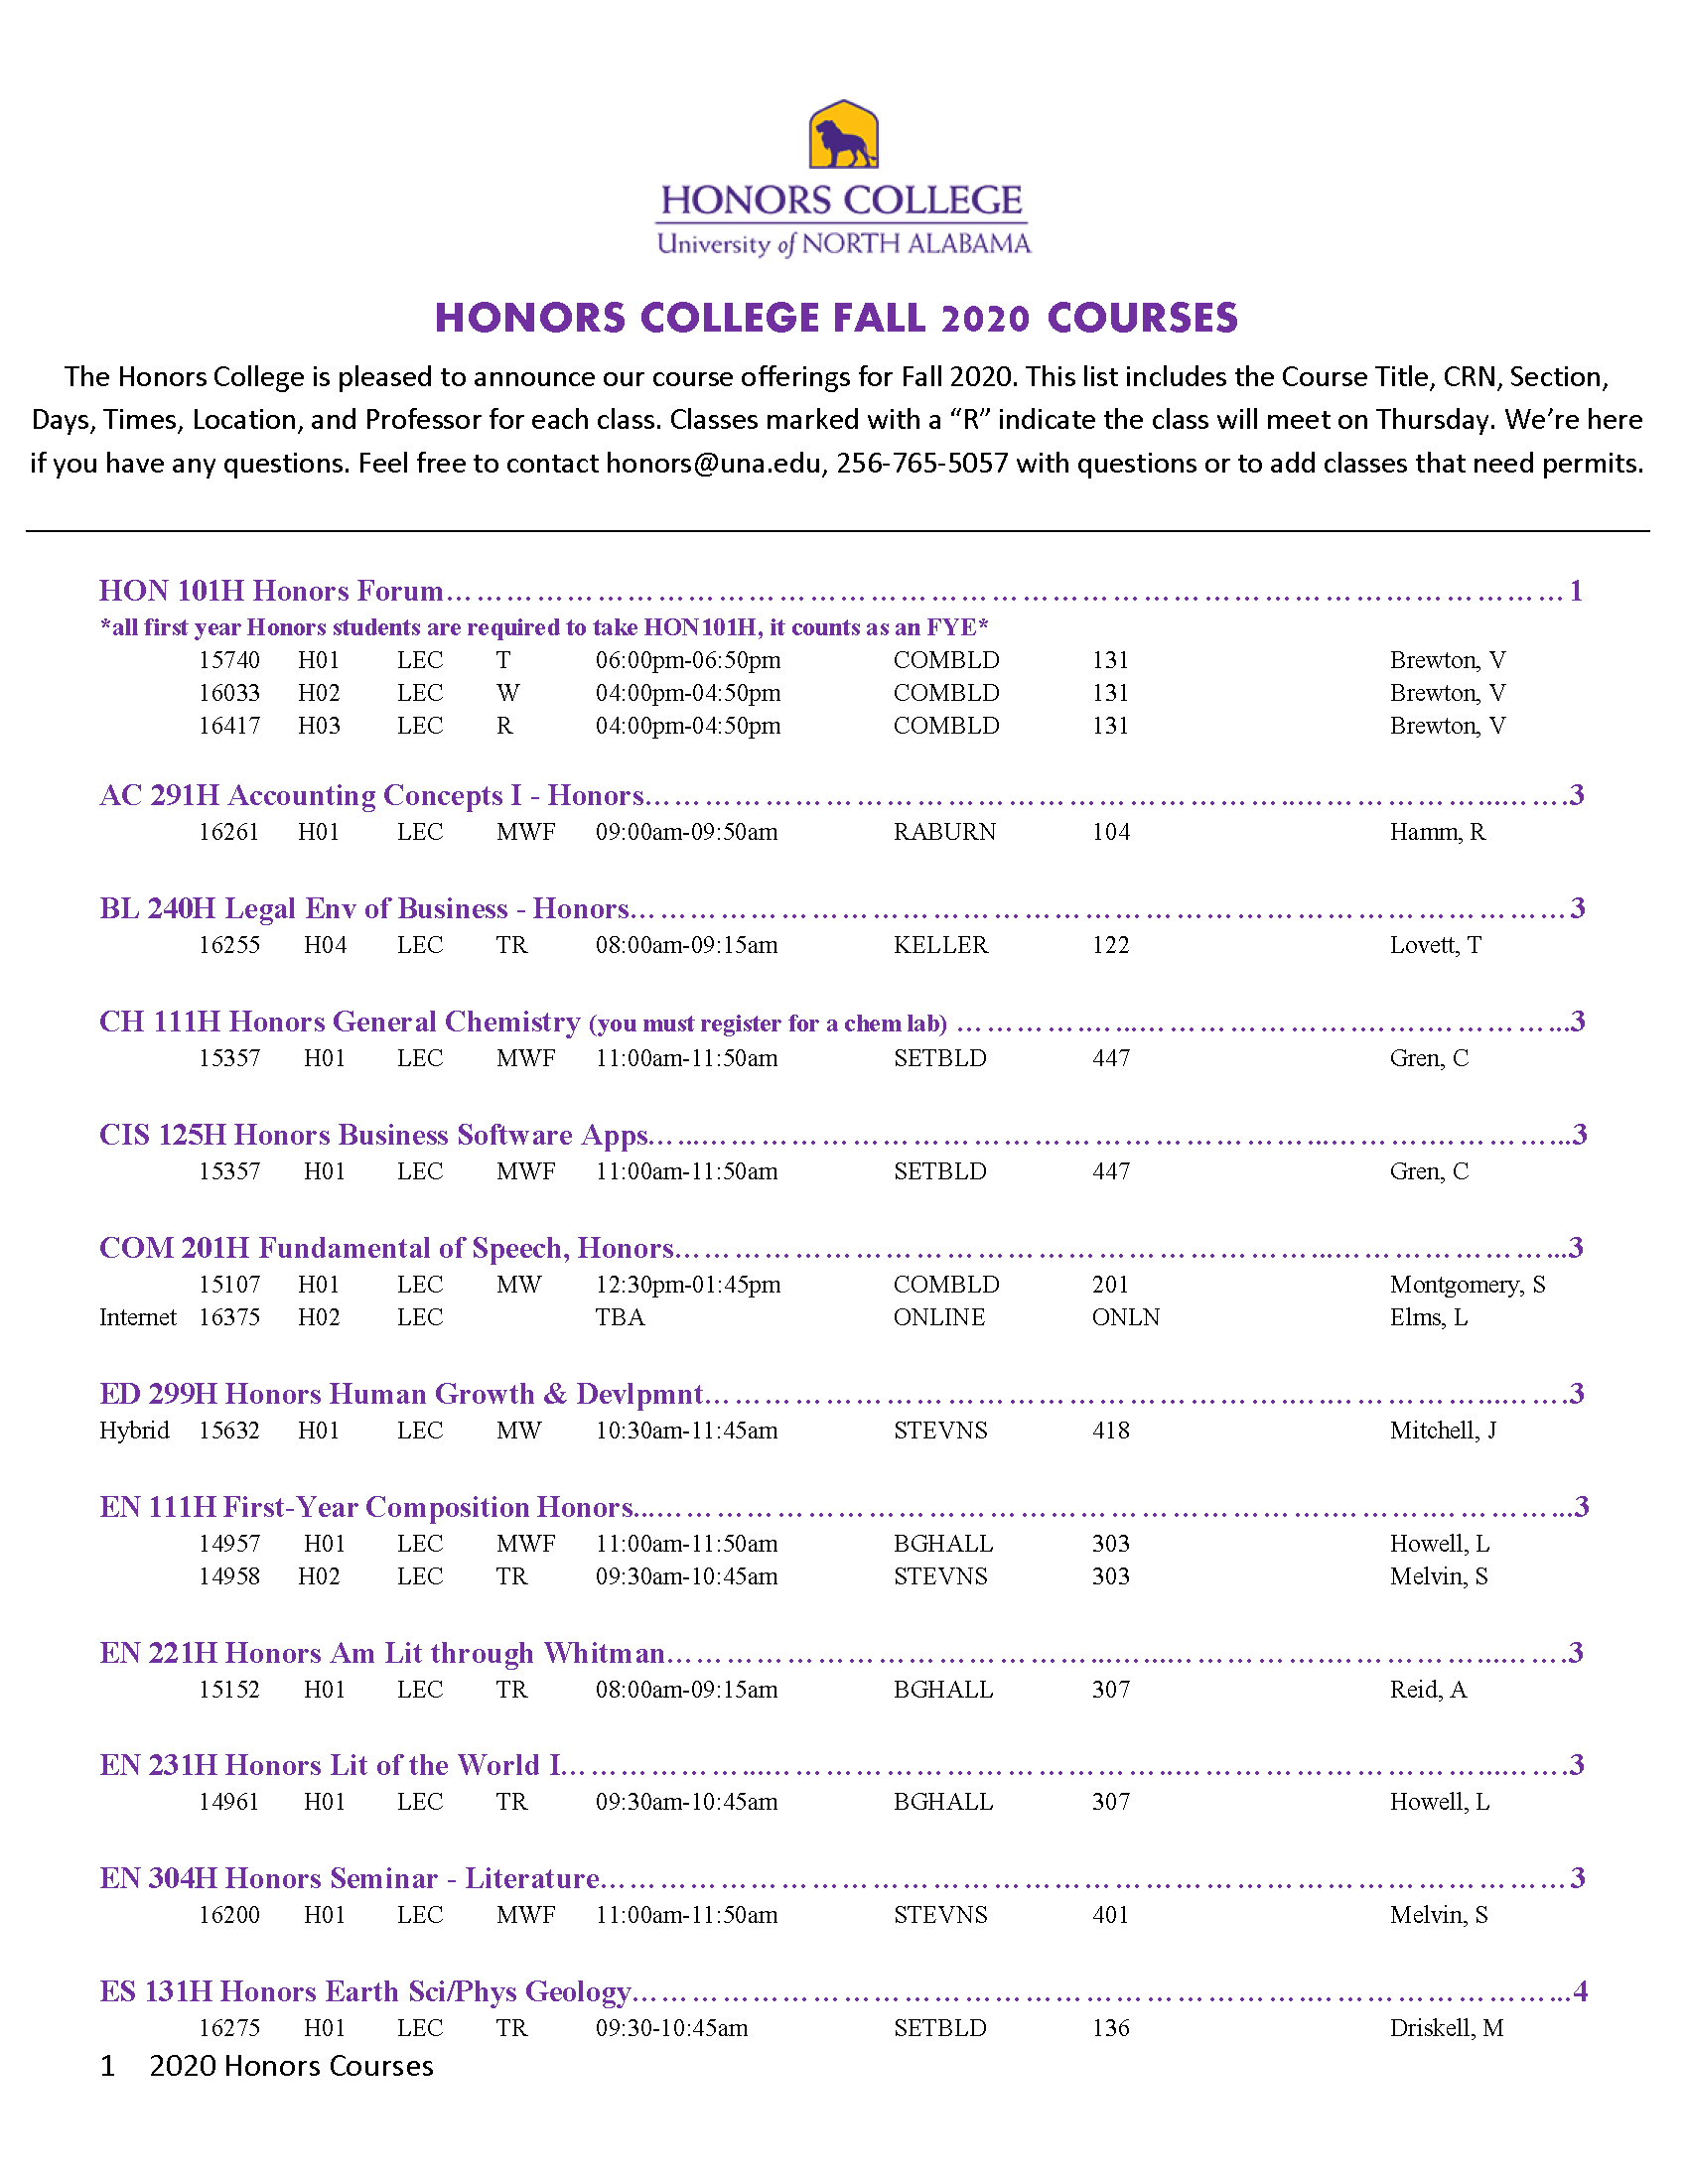 Honors Fall Courses